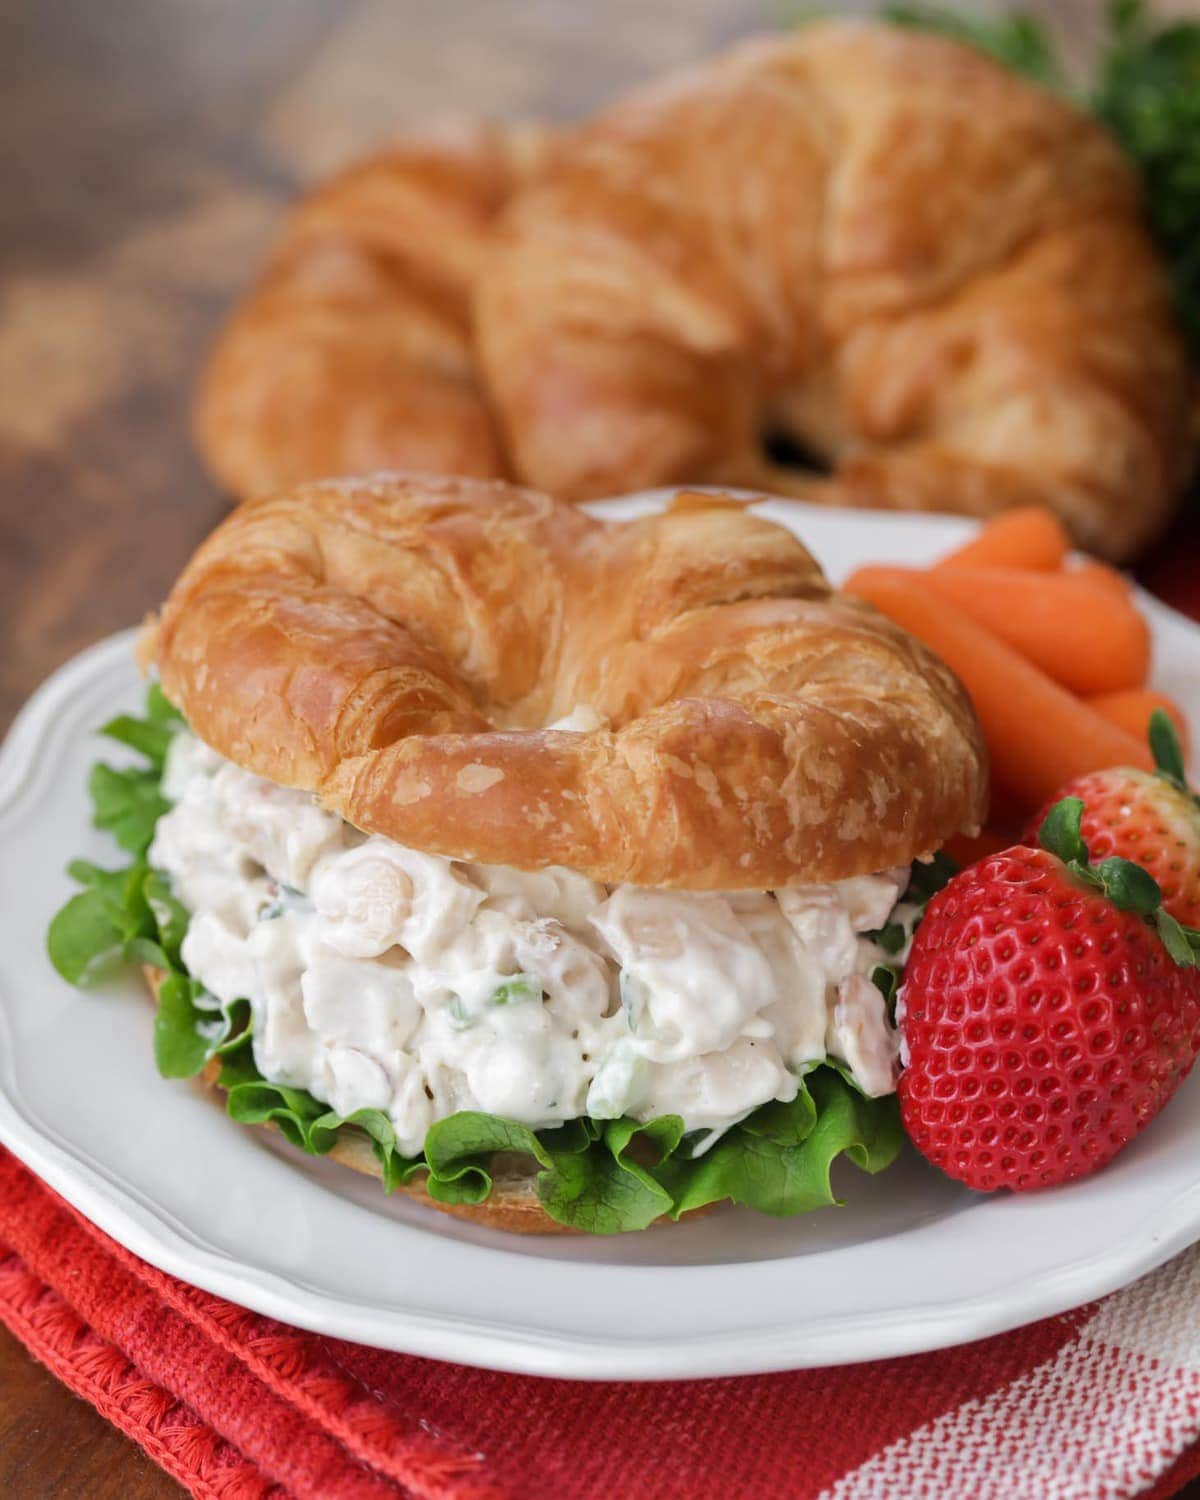 Chicken salad sandwich recipe with strawberries on the side